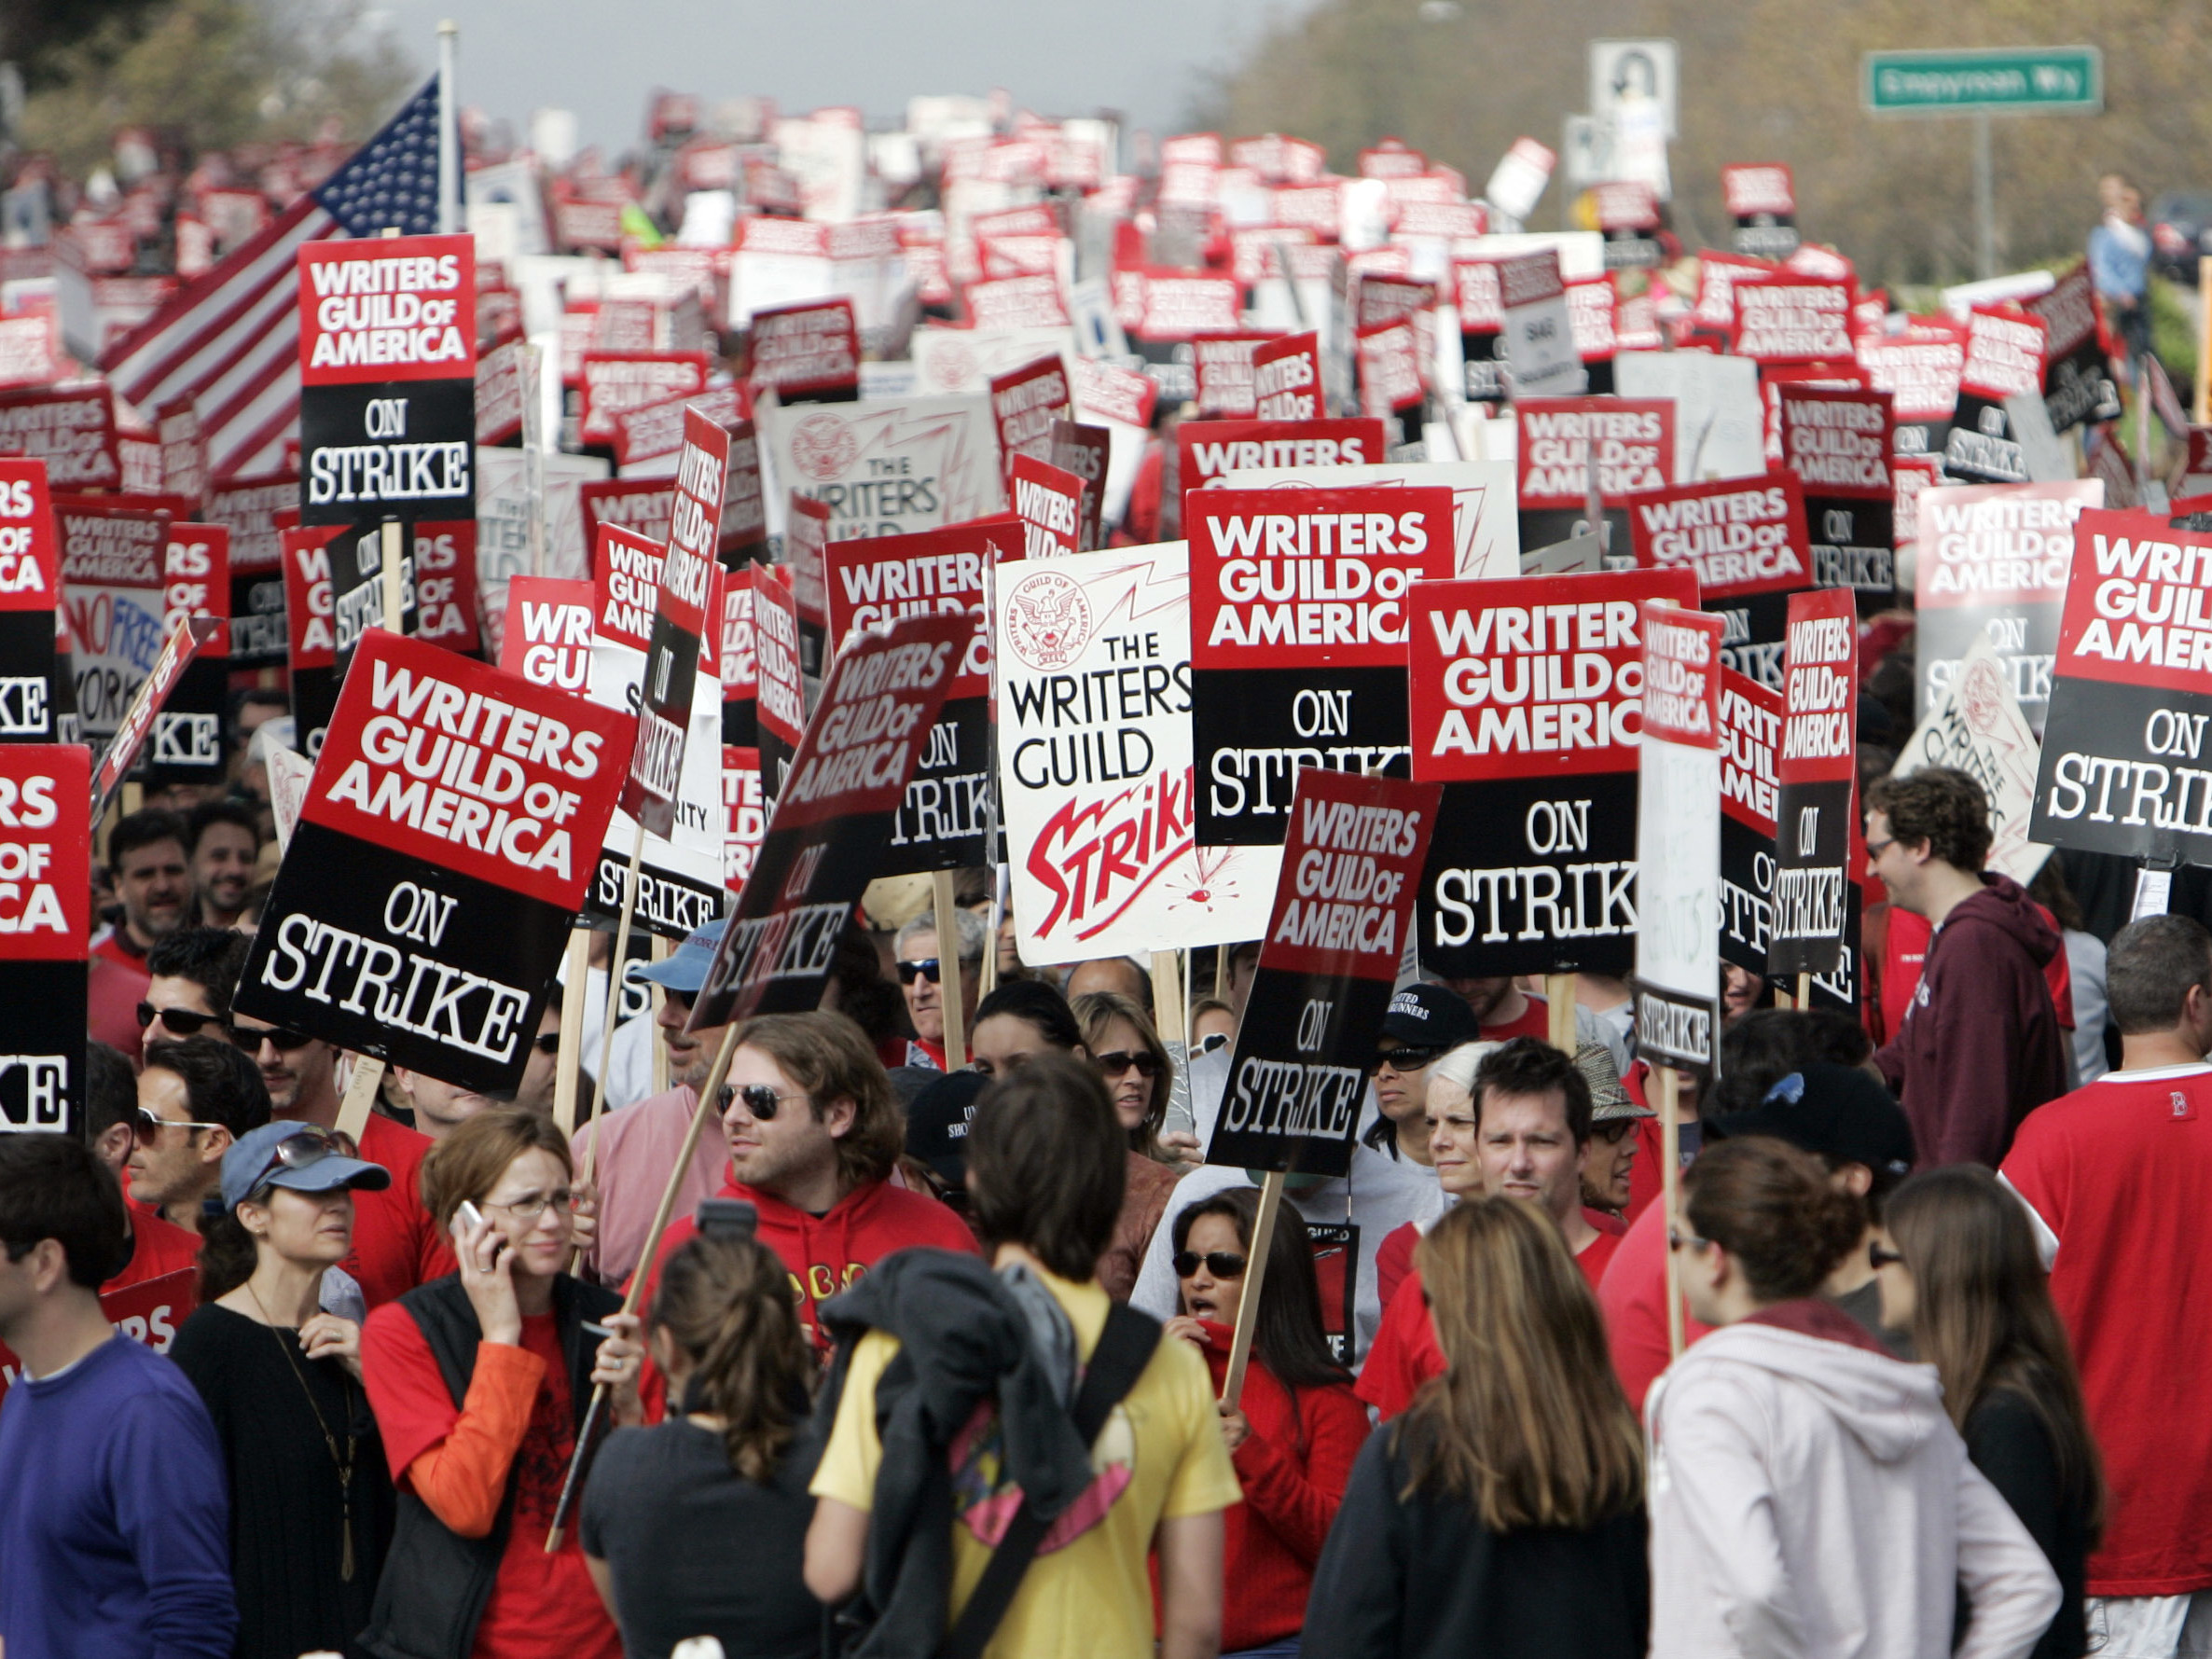 Writers Guild of America Reaches Deal, Avoids Strike